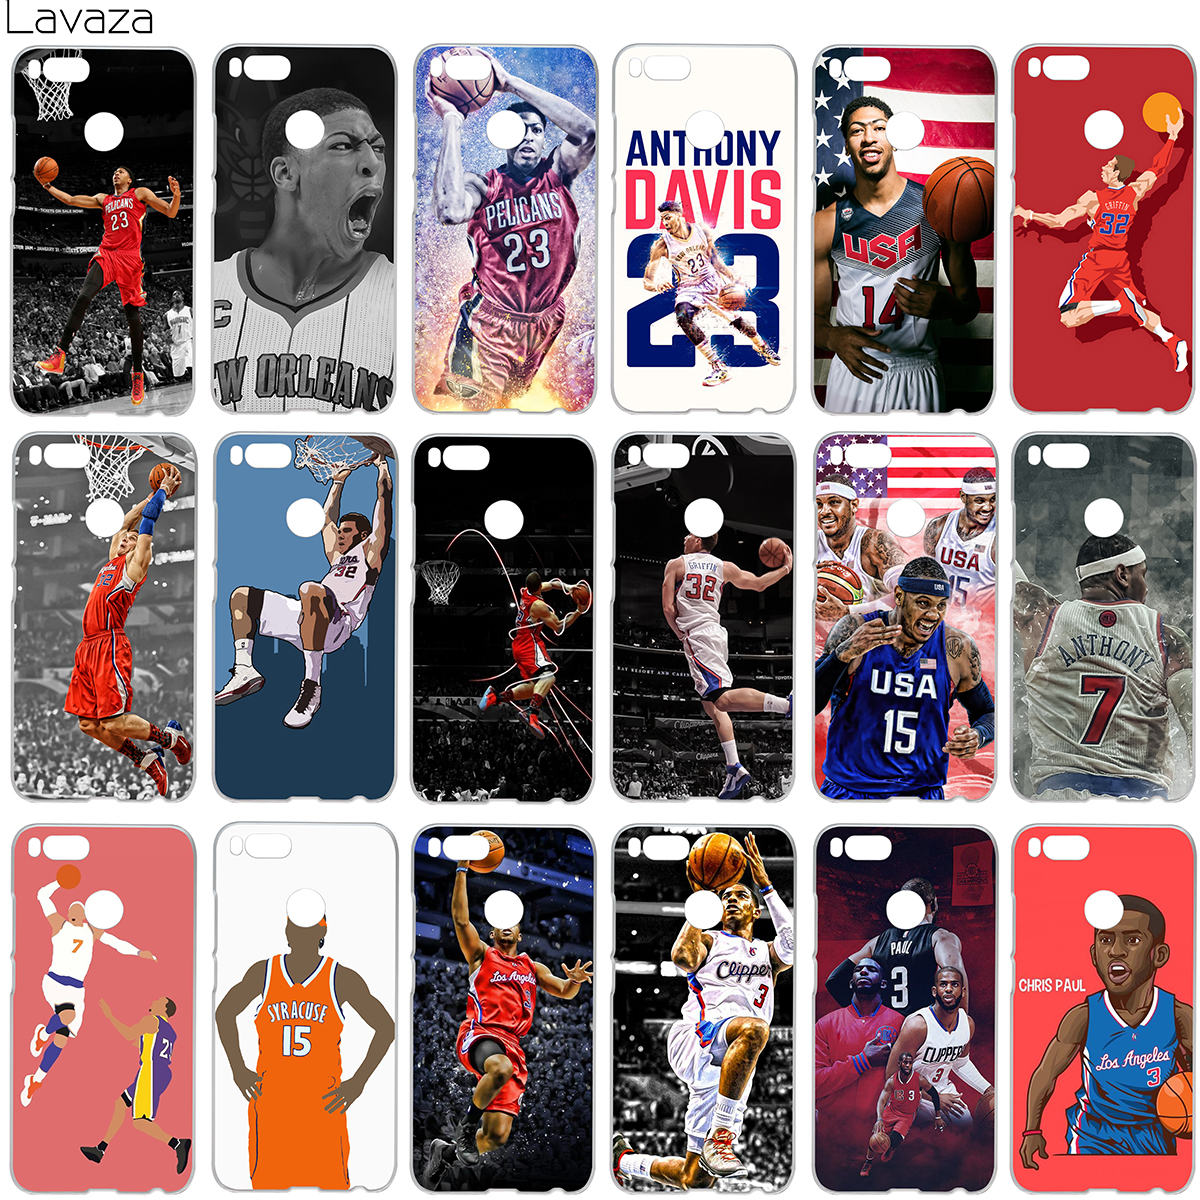 Lavaza Anthony Davis Blake Carmelo Anthony Chris Paul Case for Xiaomi Redmi Note 4X MI A1 4 5 6 Plus 4A MI6 Pro 5A